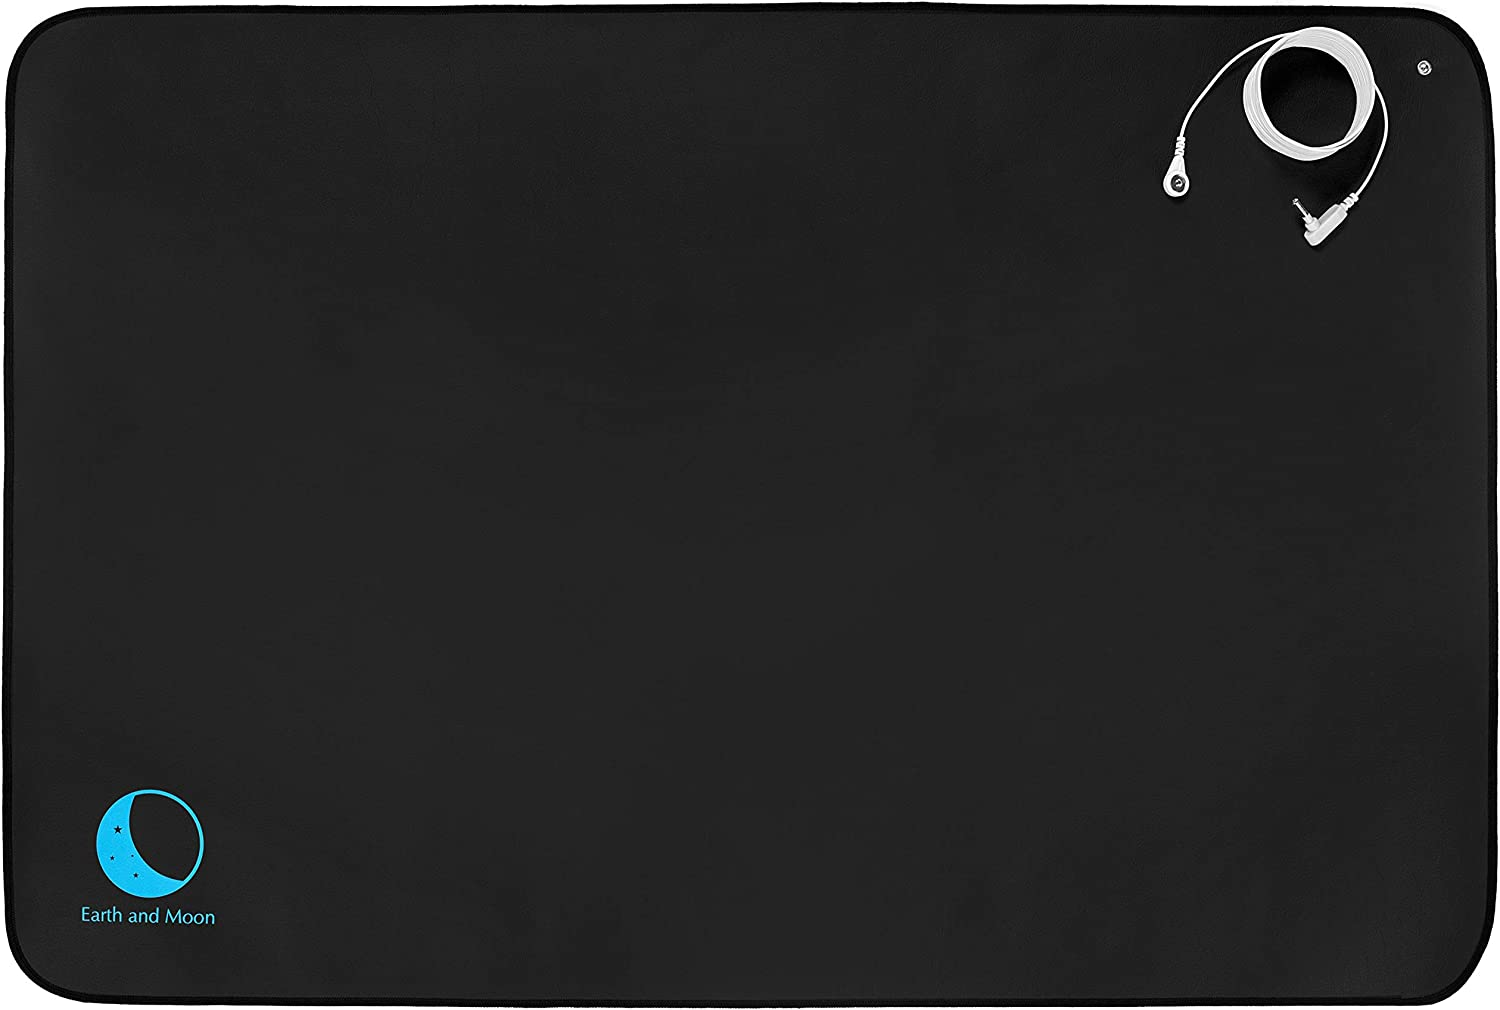 Earth and Moon Grounding Mat – Universal Earthing mats Plus Earthing Cord. Grounded Foot Therapy, Potential EMF and ESD Protection, Reduce Inflammation, Sleep Assist and Helps with Anxiety